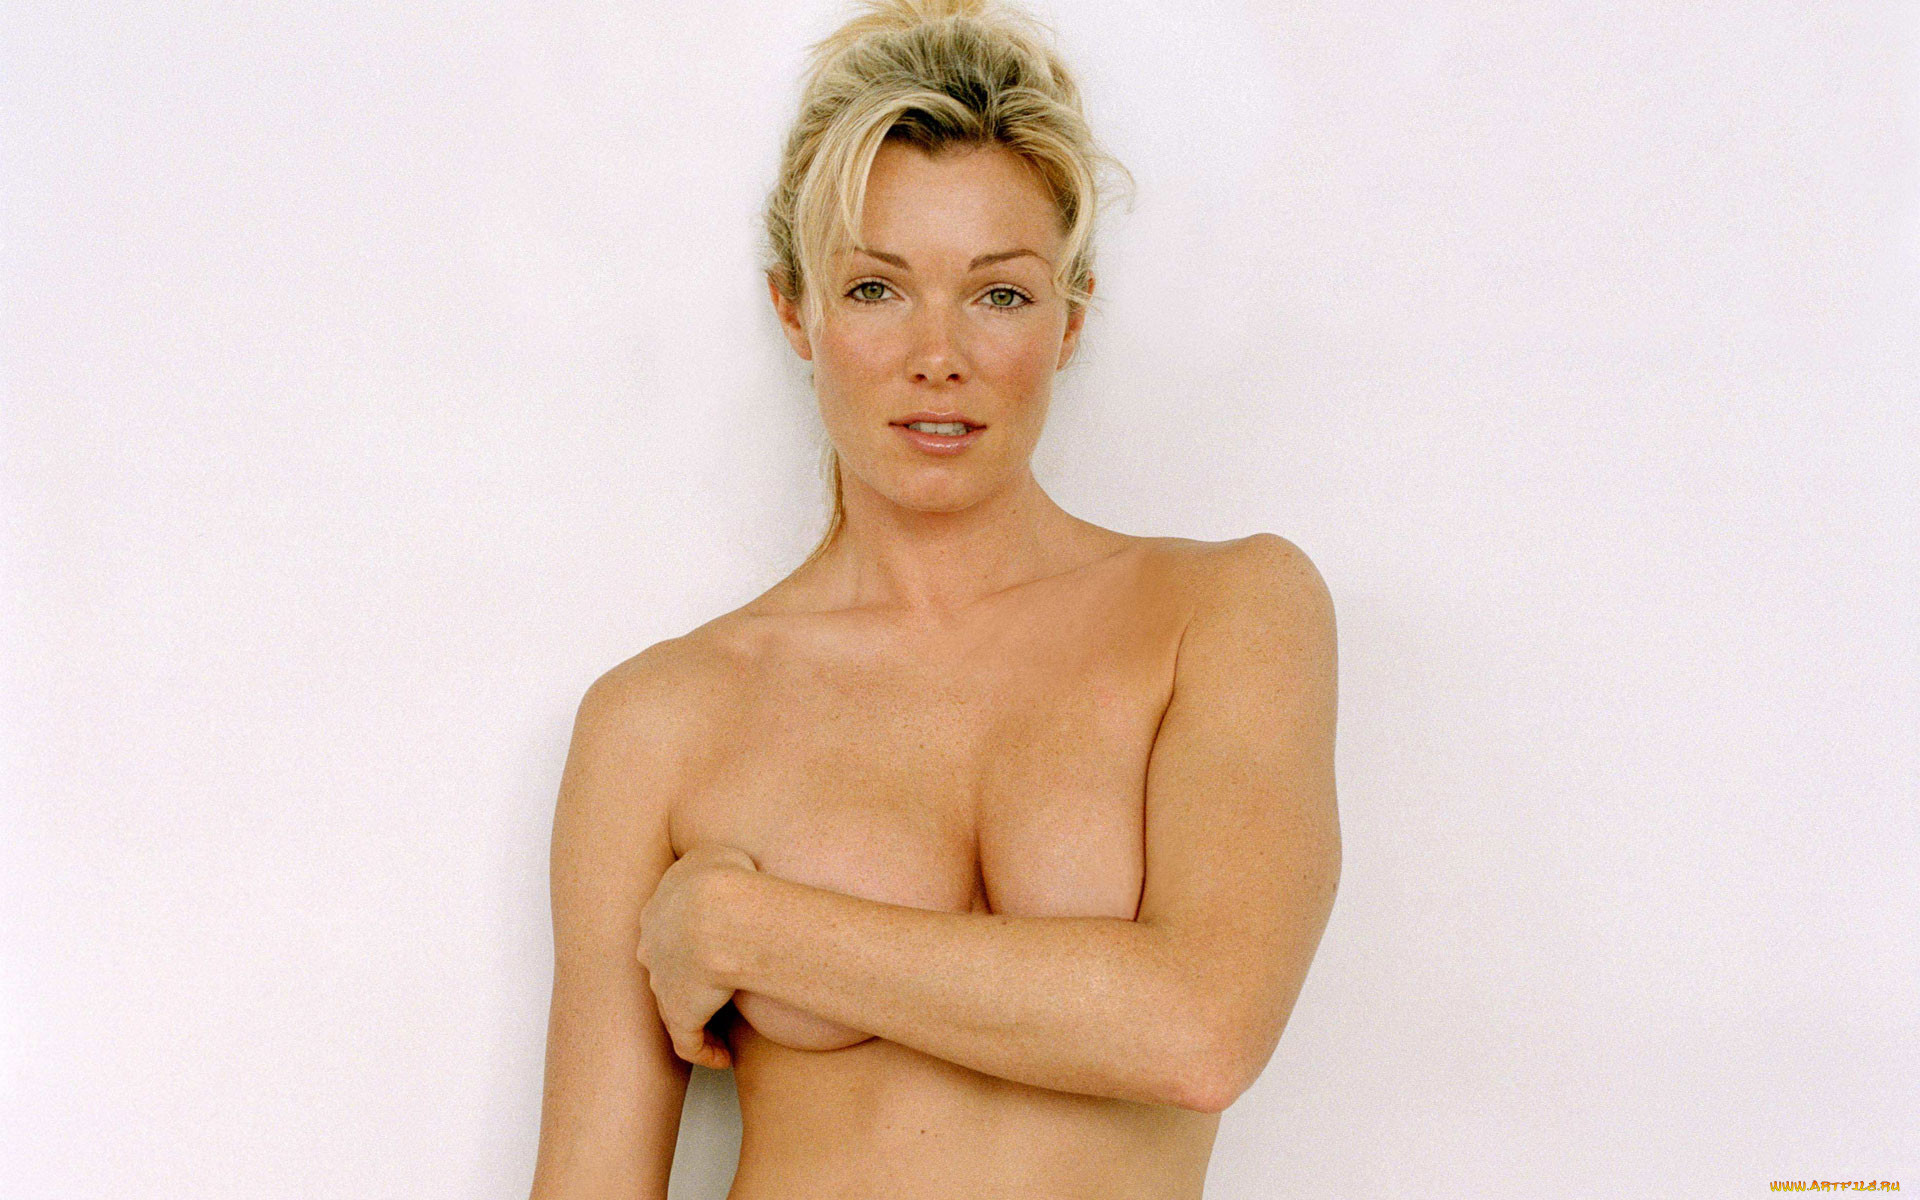 Nell mcandrew high resolution stock photography and images